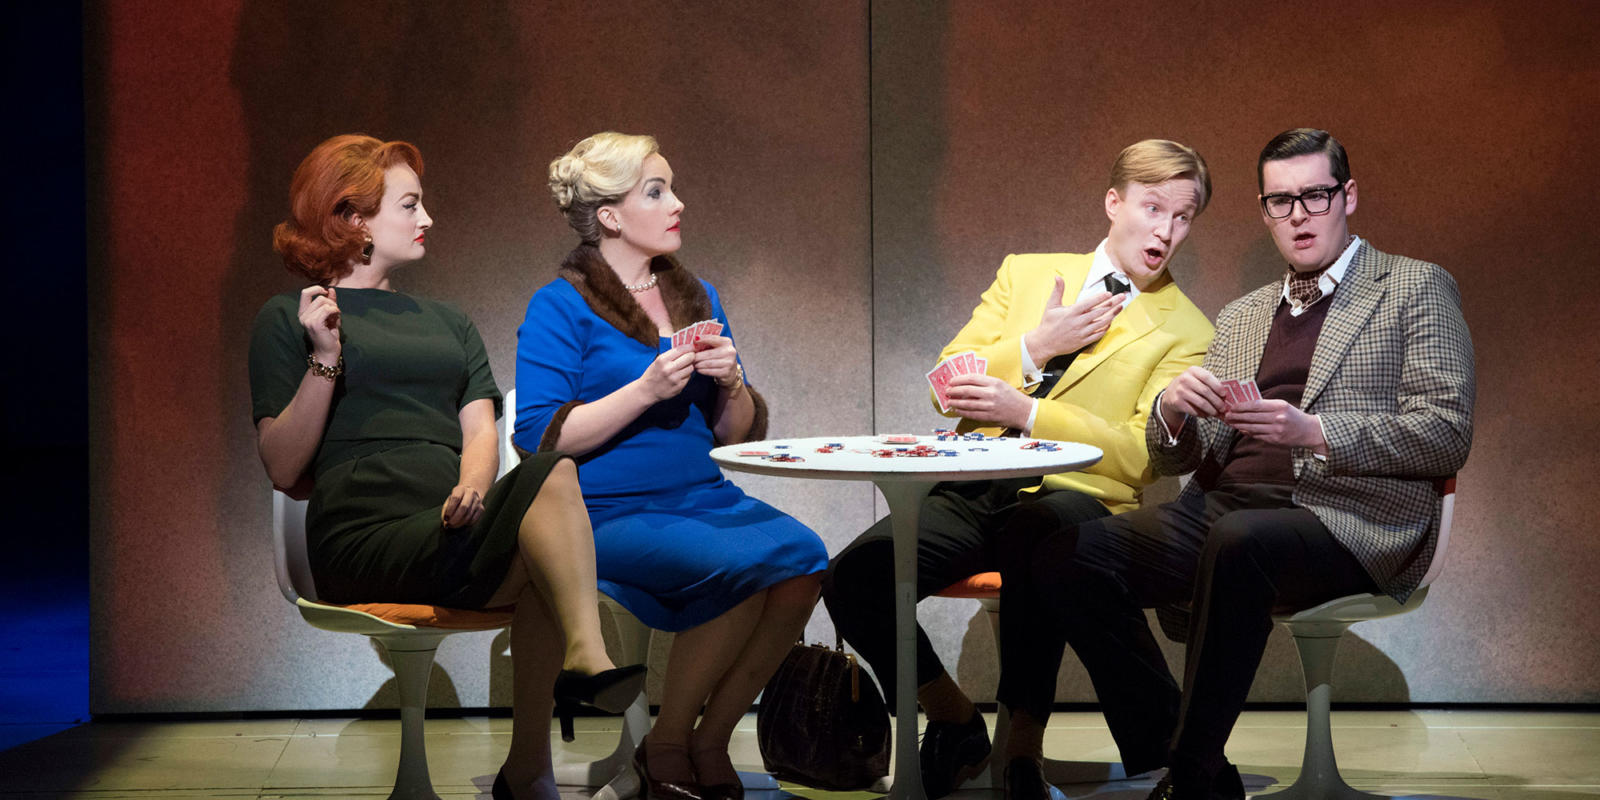 Eleanor Dennis, Sasha Cooke, James Laing, Matthew Durkan playing poker (c) Richard Hubert Smith